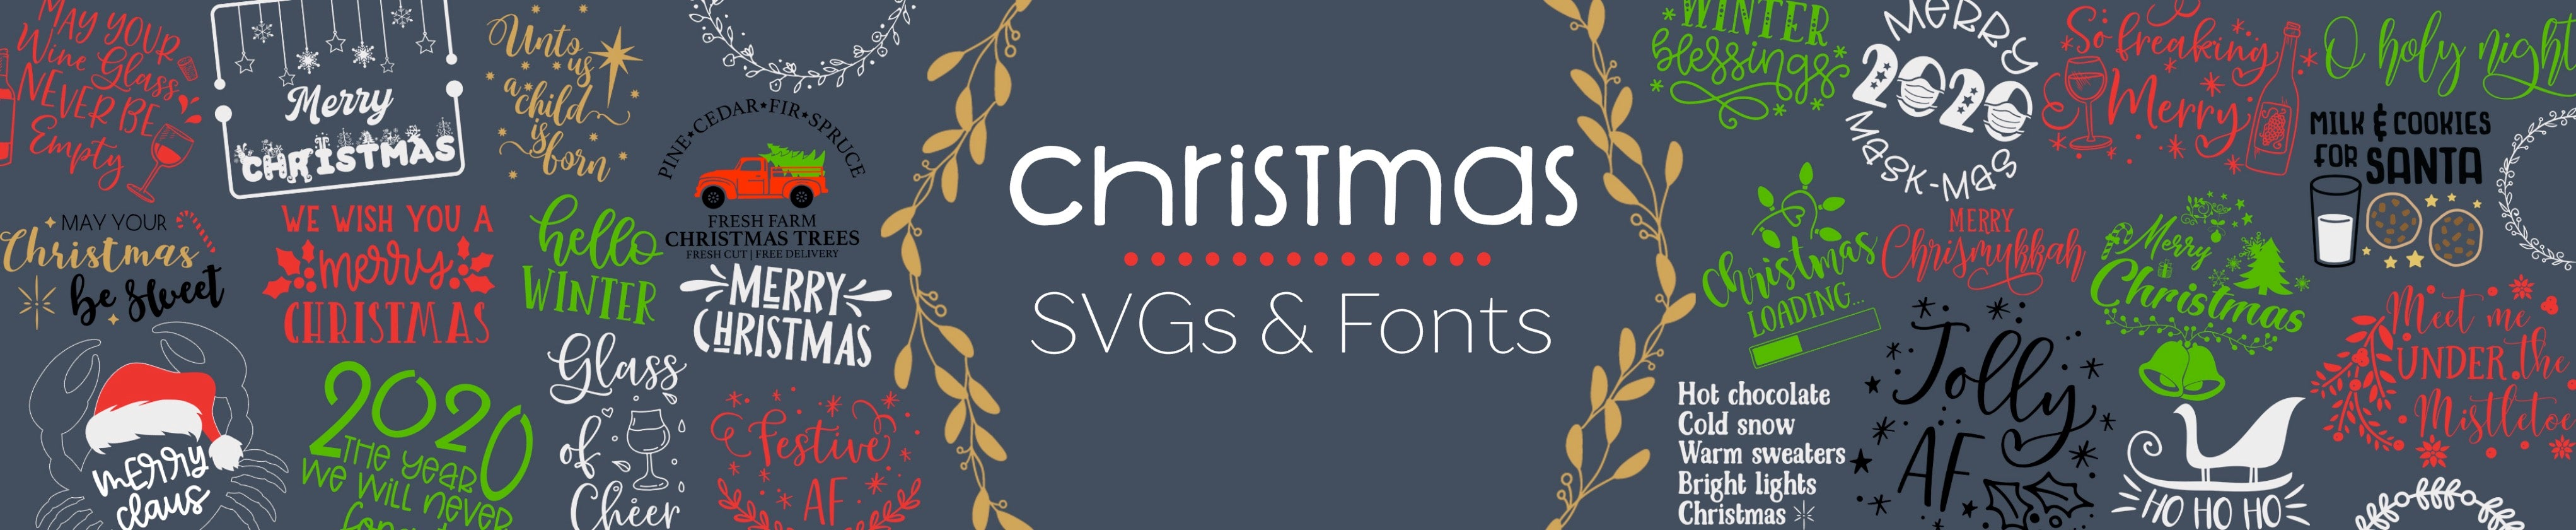 Commercial Free Christmas SVG Designs and Fonts